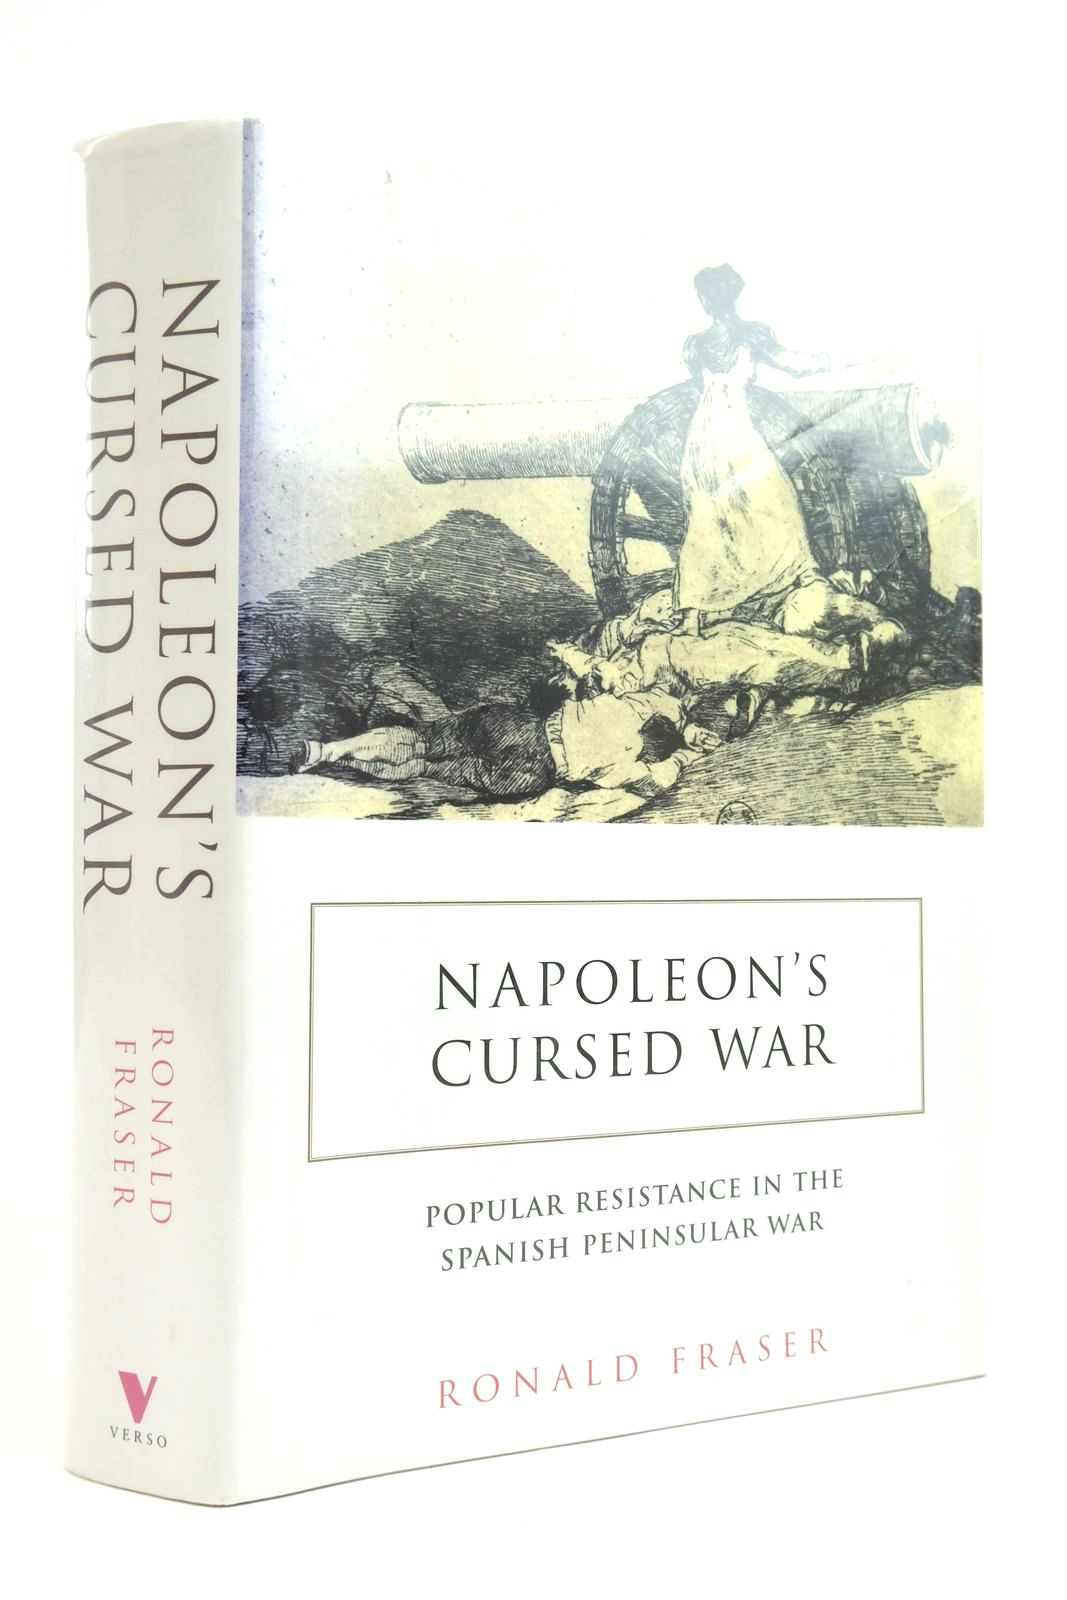 Photo of NAPOLEON'S CURSE WAR: SPANISH POPULAR RESISTANCE IN THE PENINSULAR WAR 1808-1814 written by Fraser, Ronald published by Verso (STOCK CODE: 2135393)  for sale by Stella & Rose's Books